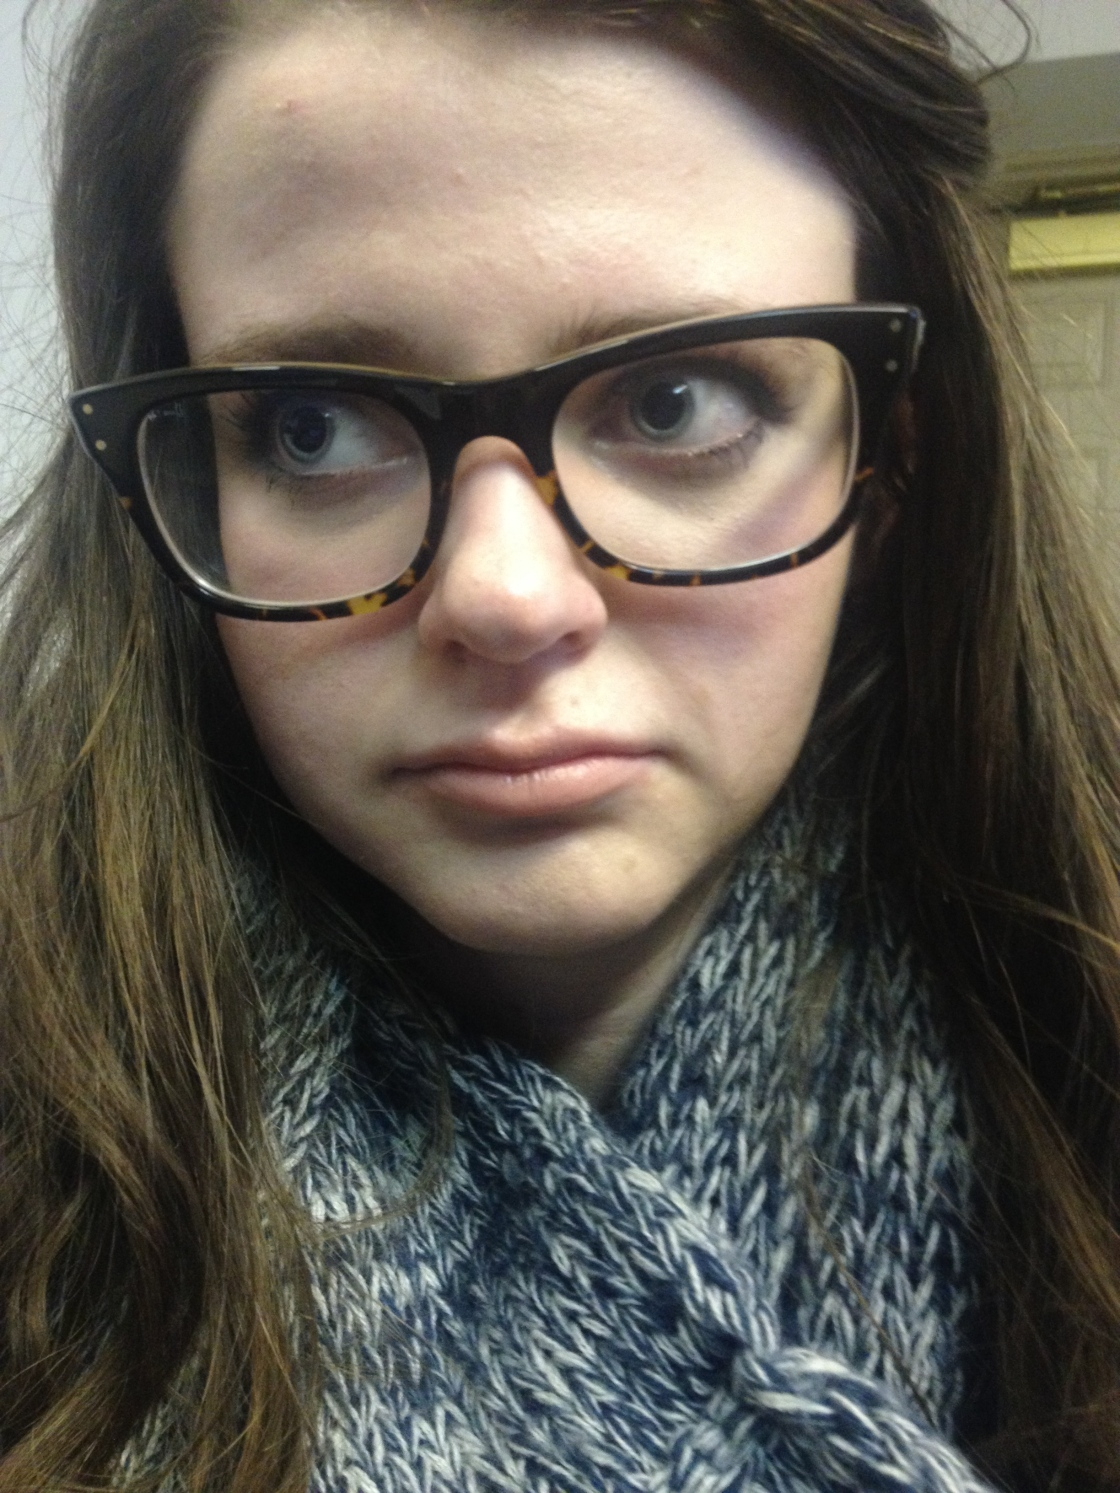 holed up in the library again and indeed, I do wear glasses and warning I'm not actually wearing foundation here